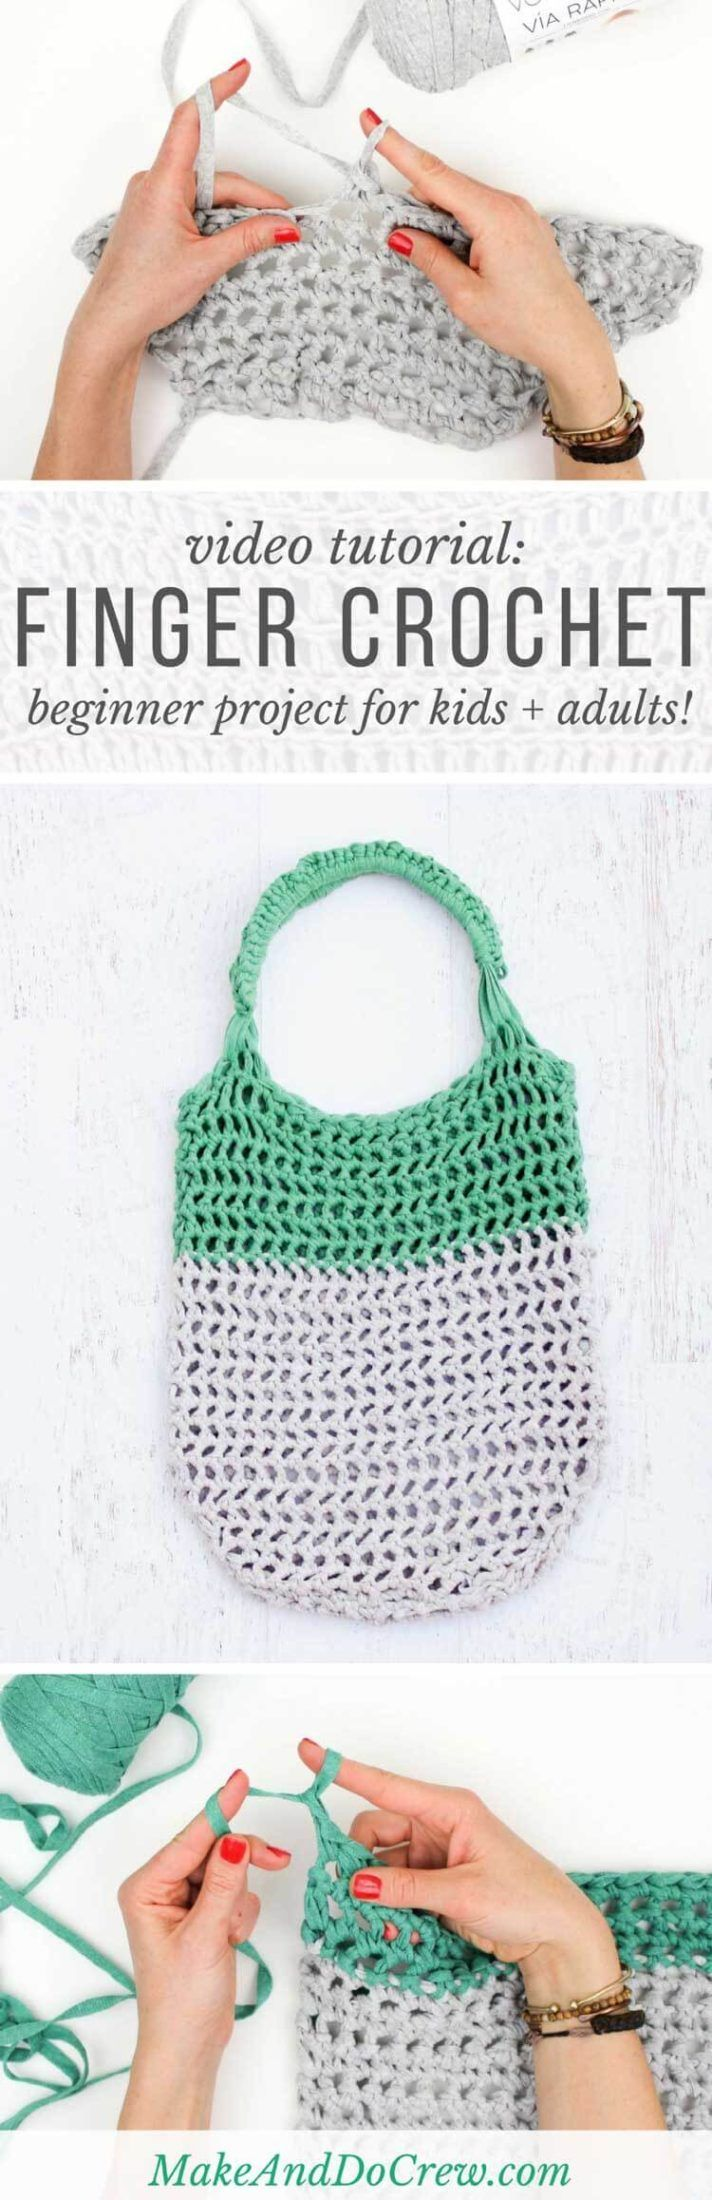 114 best Purses & Bag images on Pinterest | Bags, Crochet purses and ...